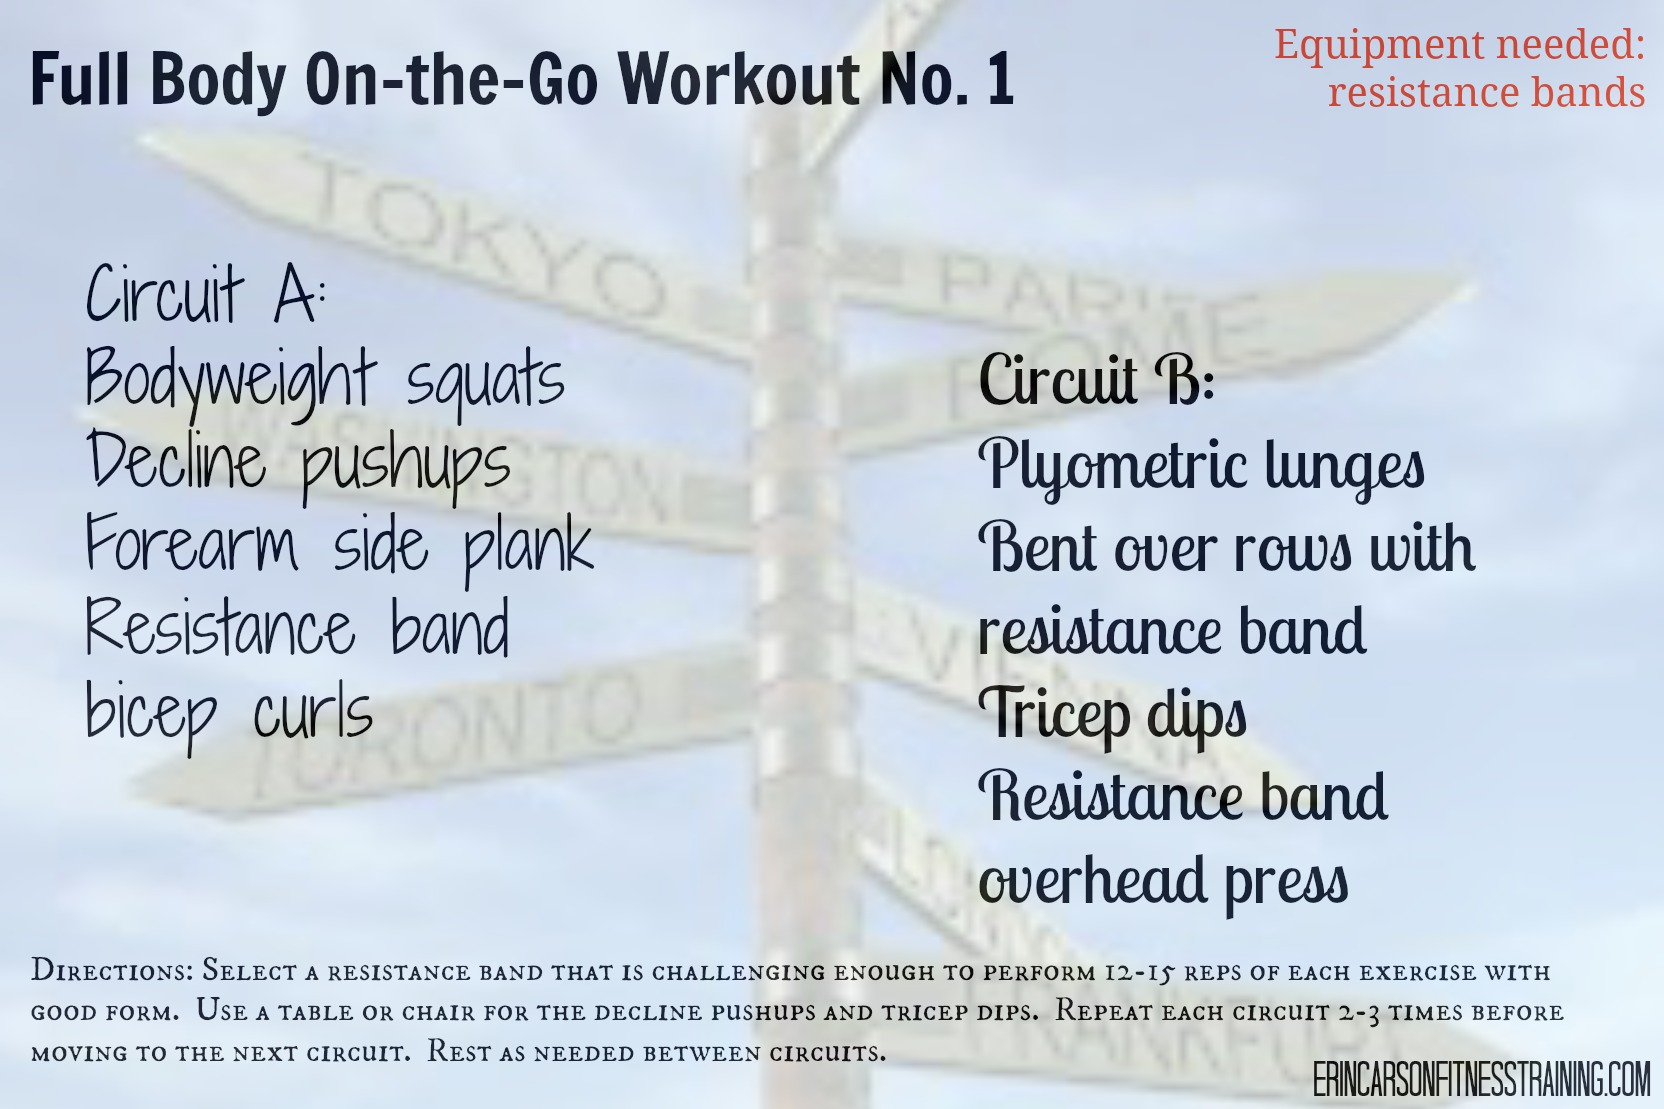 Workouts And Tagged Circuit Workout Full Body Blog Erin Mays Fitness Training Great Form On The Go No 1